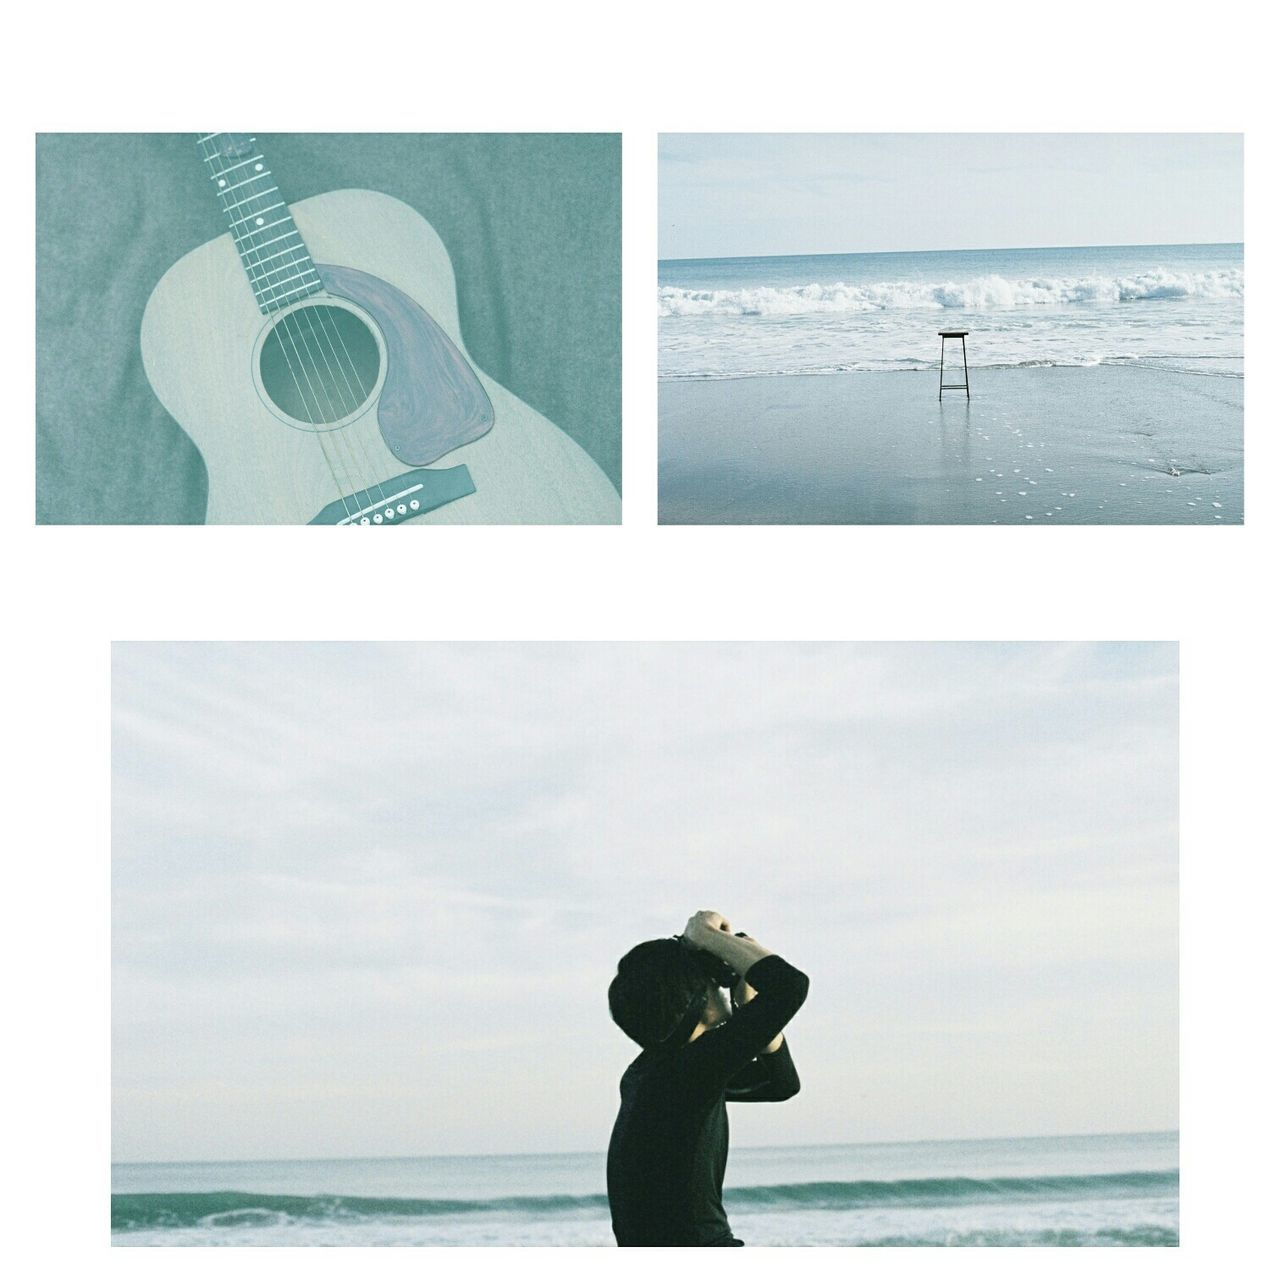 Acoustic Guitar, Arts Culture And Entertainment, Auto Post Production Filter, Beach, Beauty In Nature